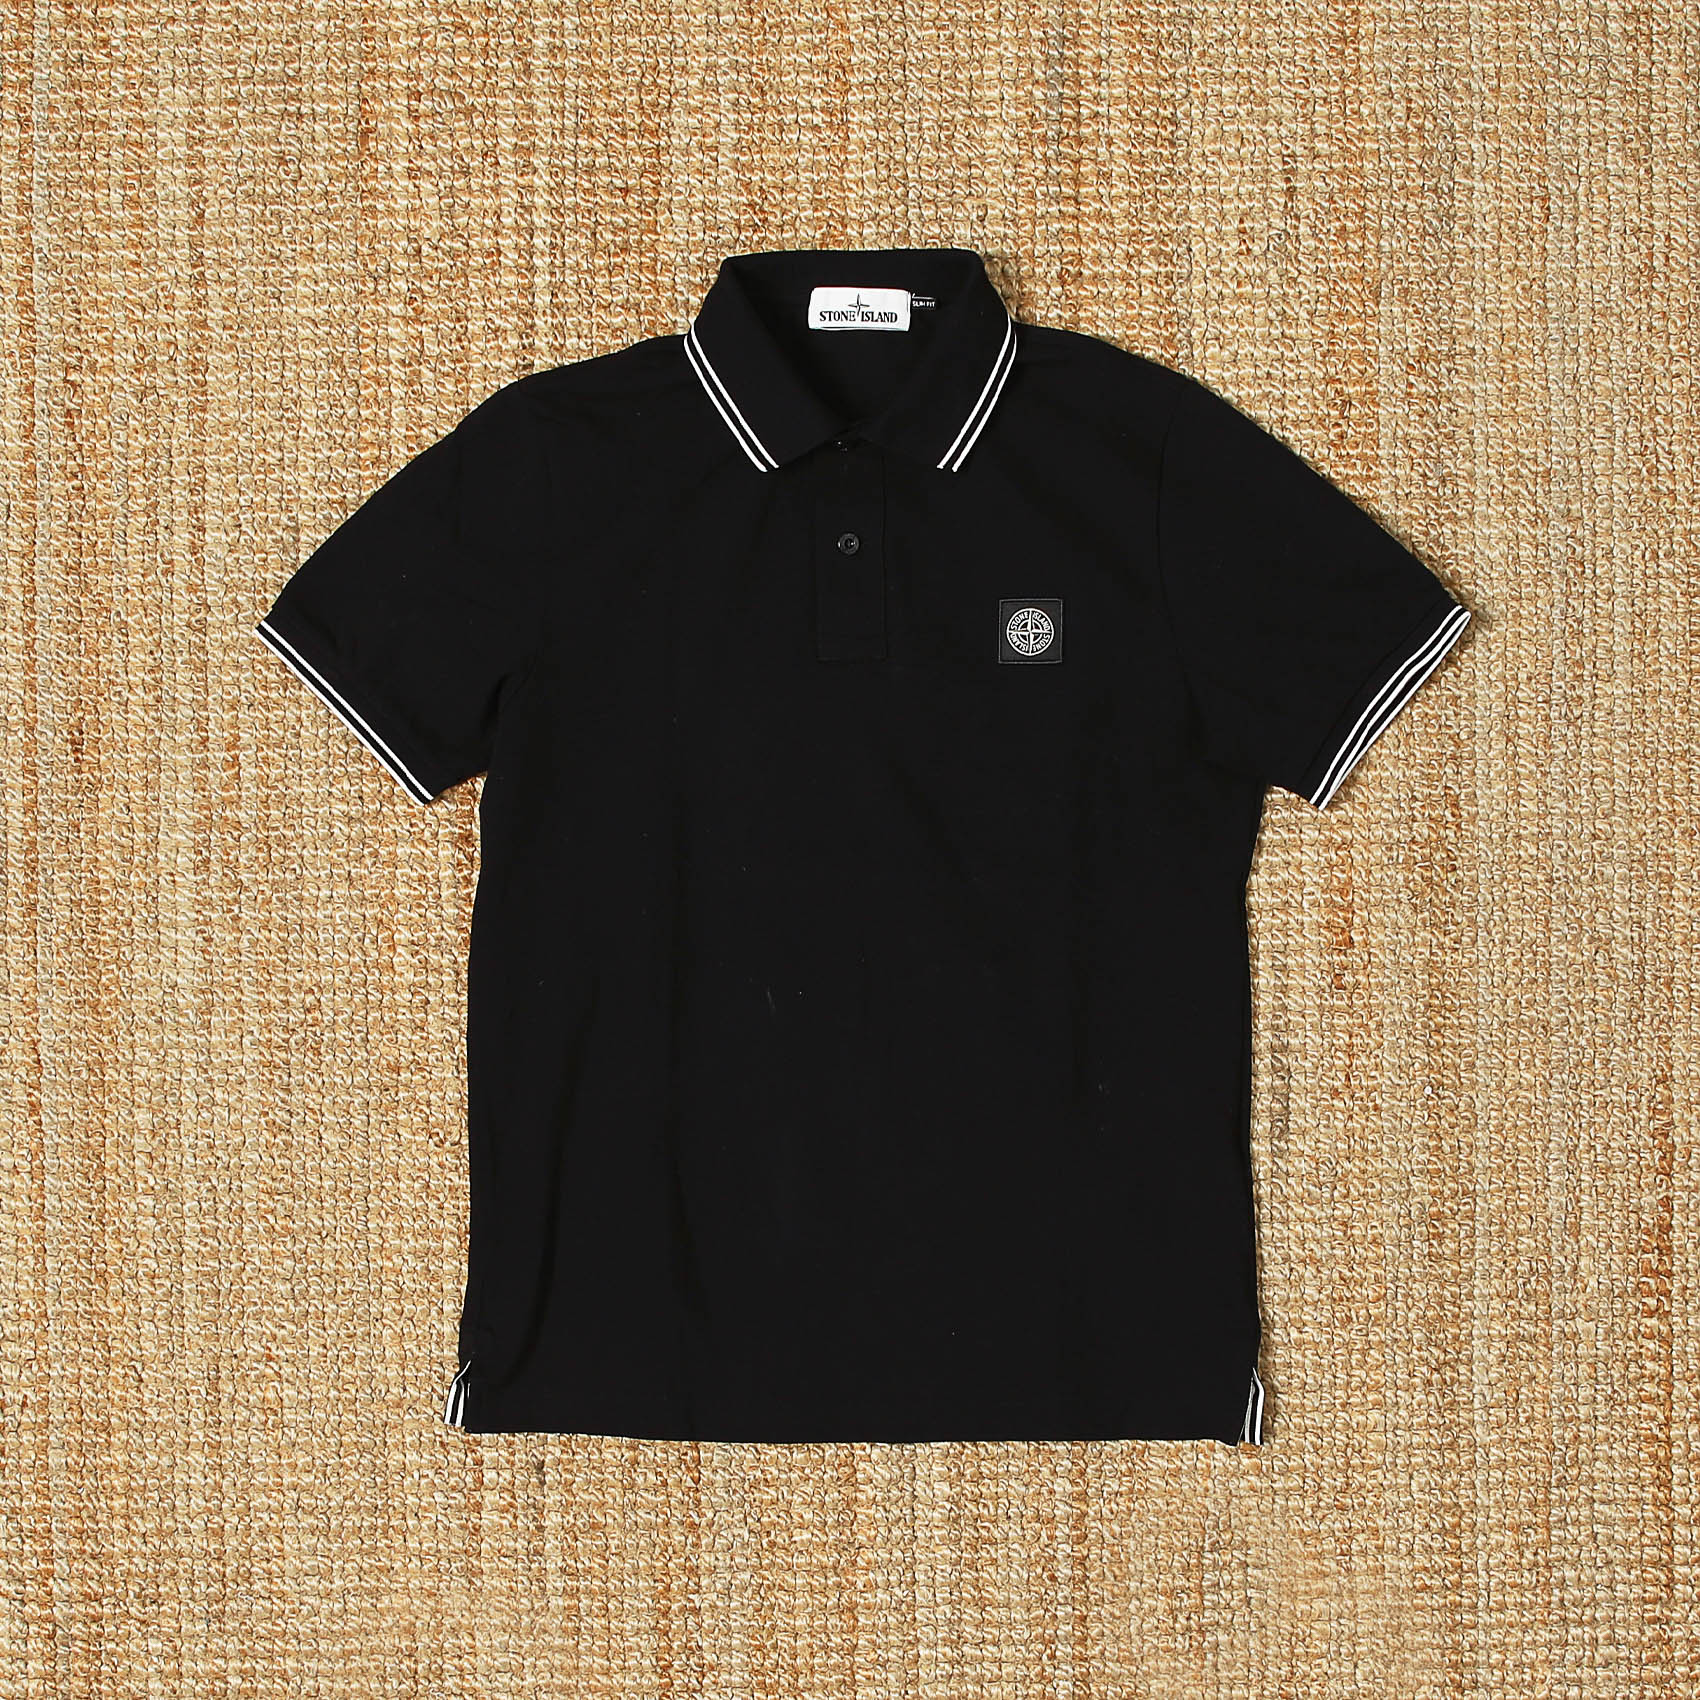 STONE ISLAND POLO T SHIRTS - BLACK